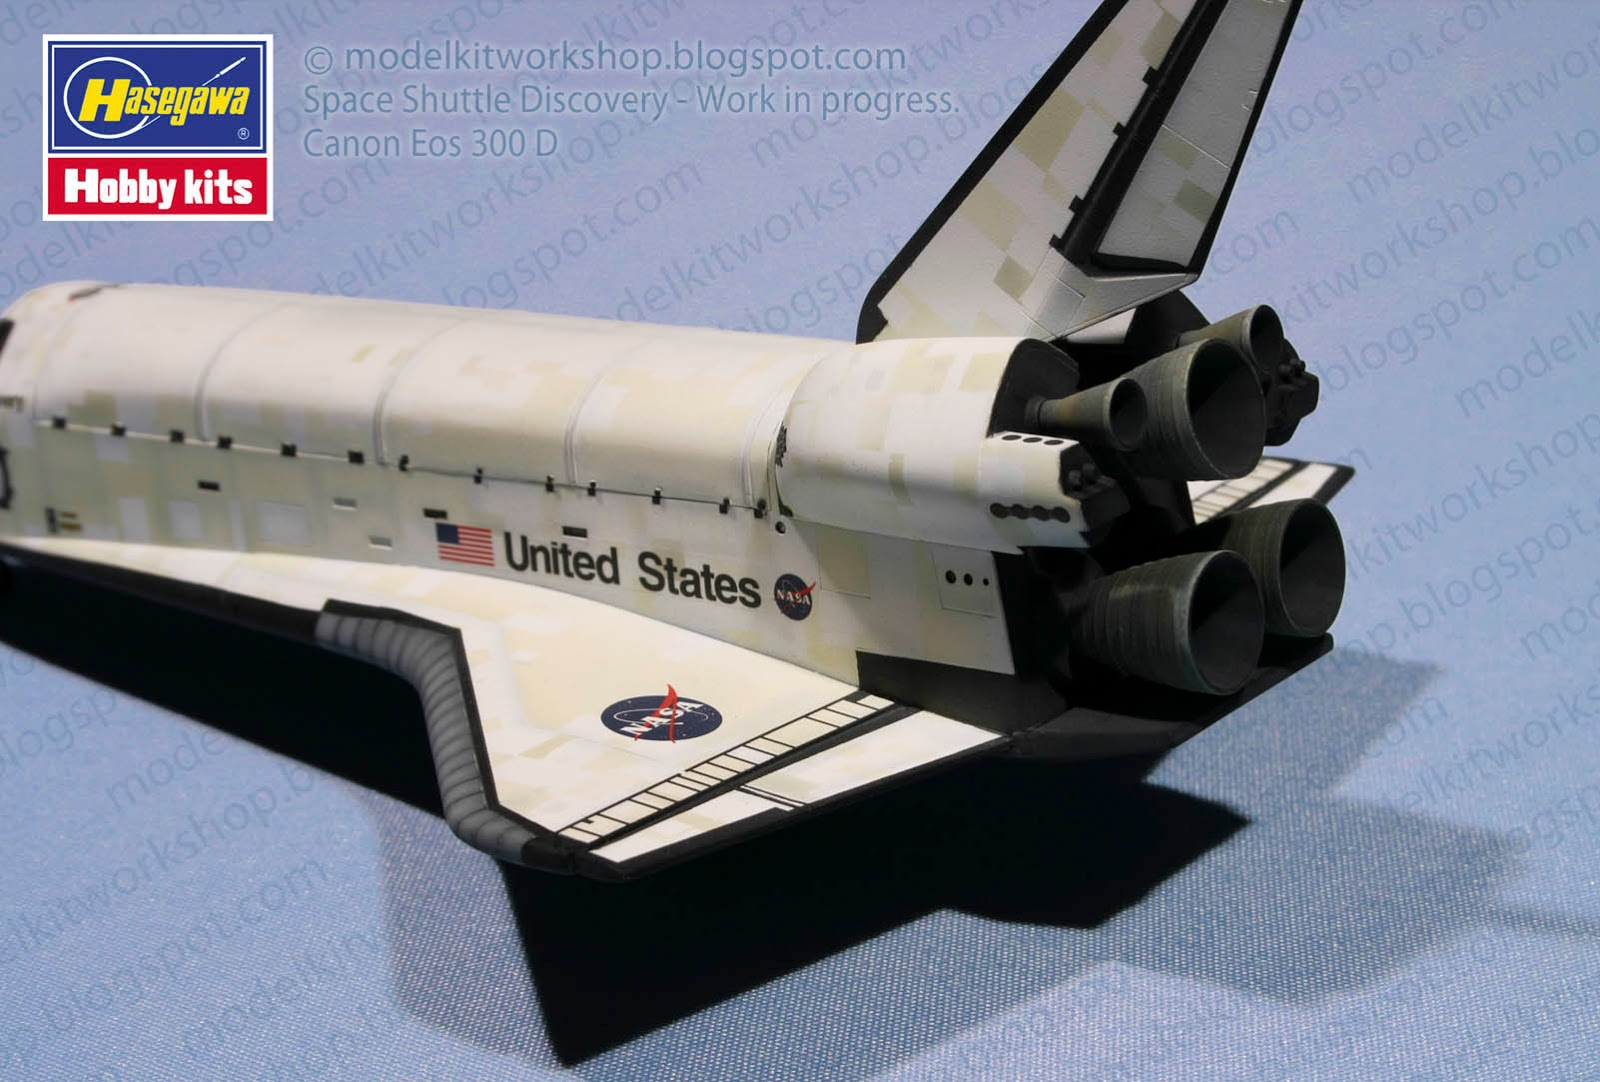 MODELKIT WORKSHOP: Space shuttle Discovery : Hasegawa 1/200